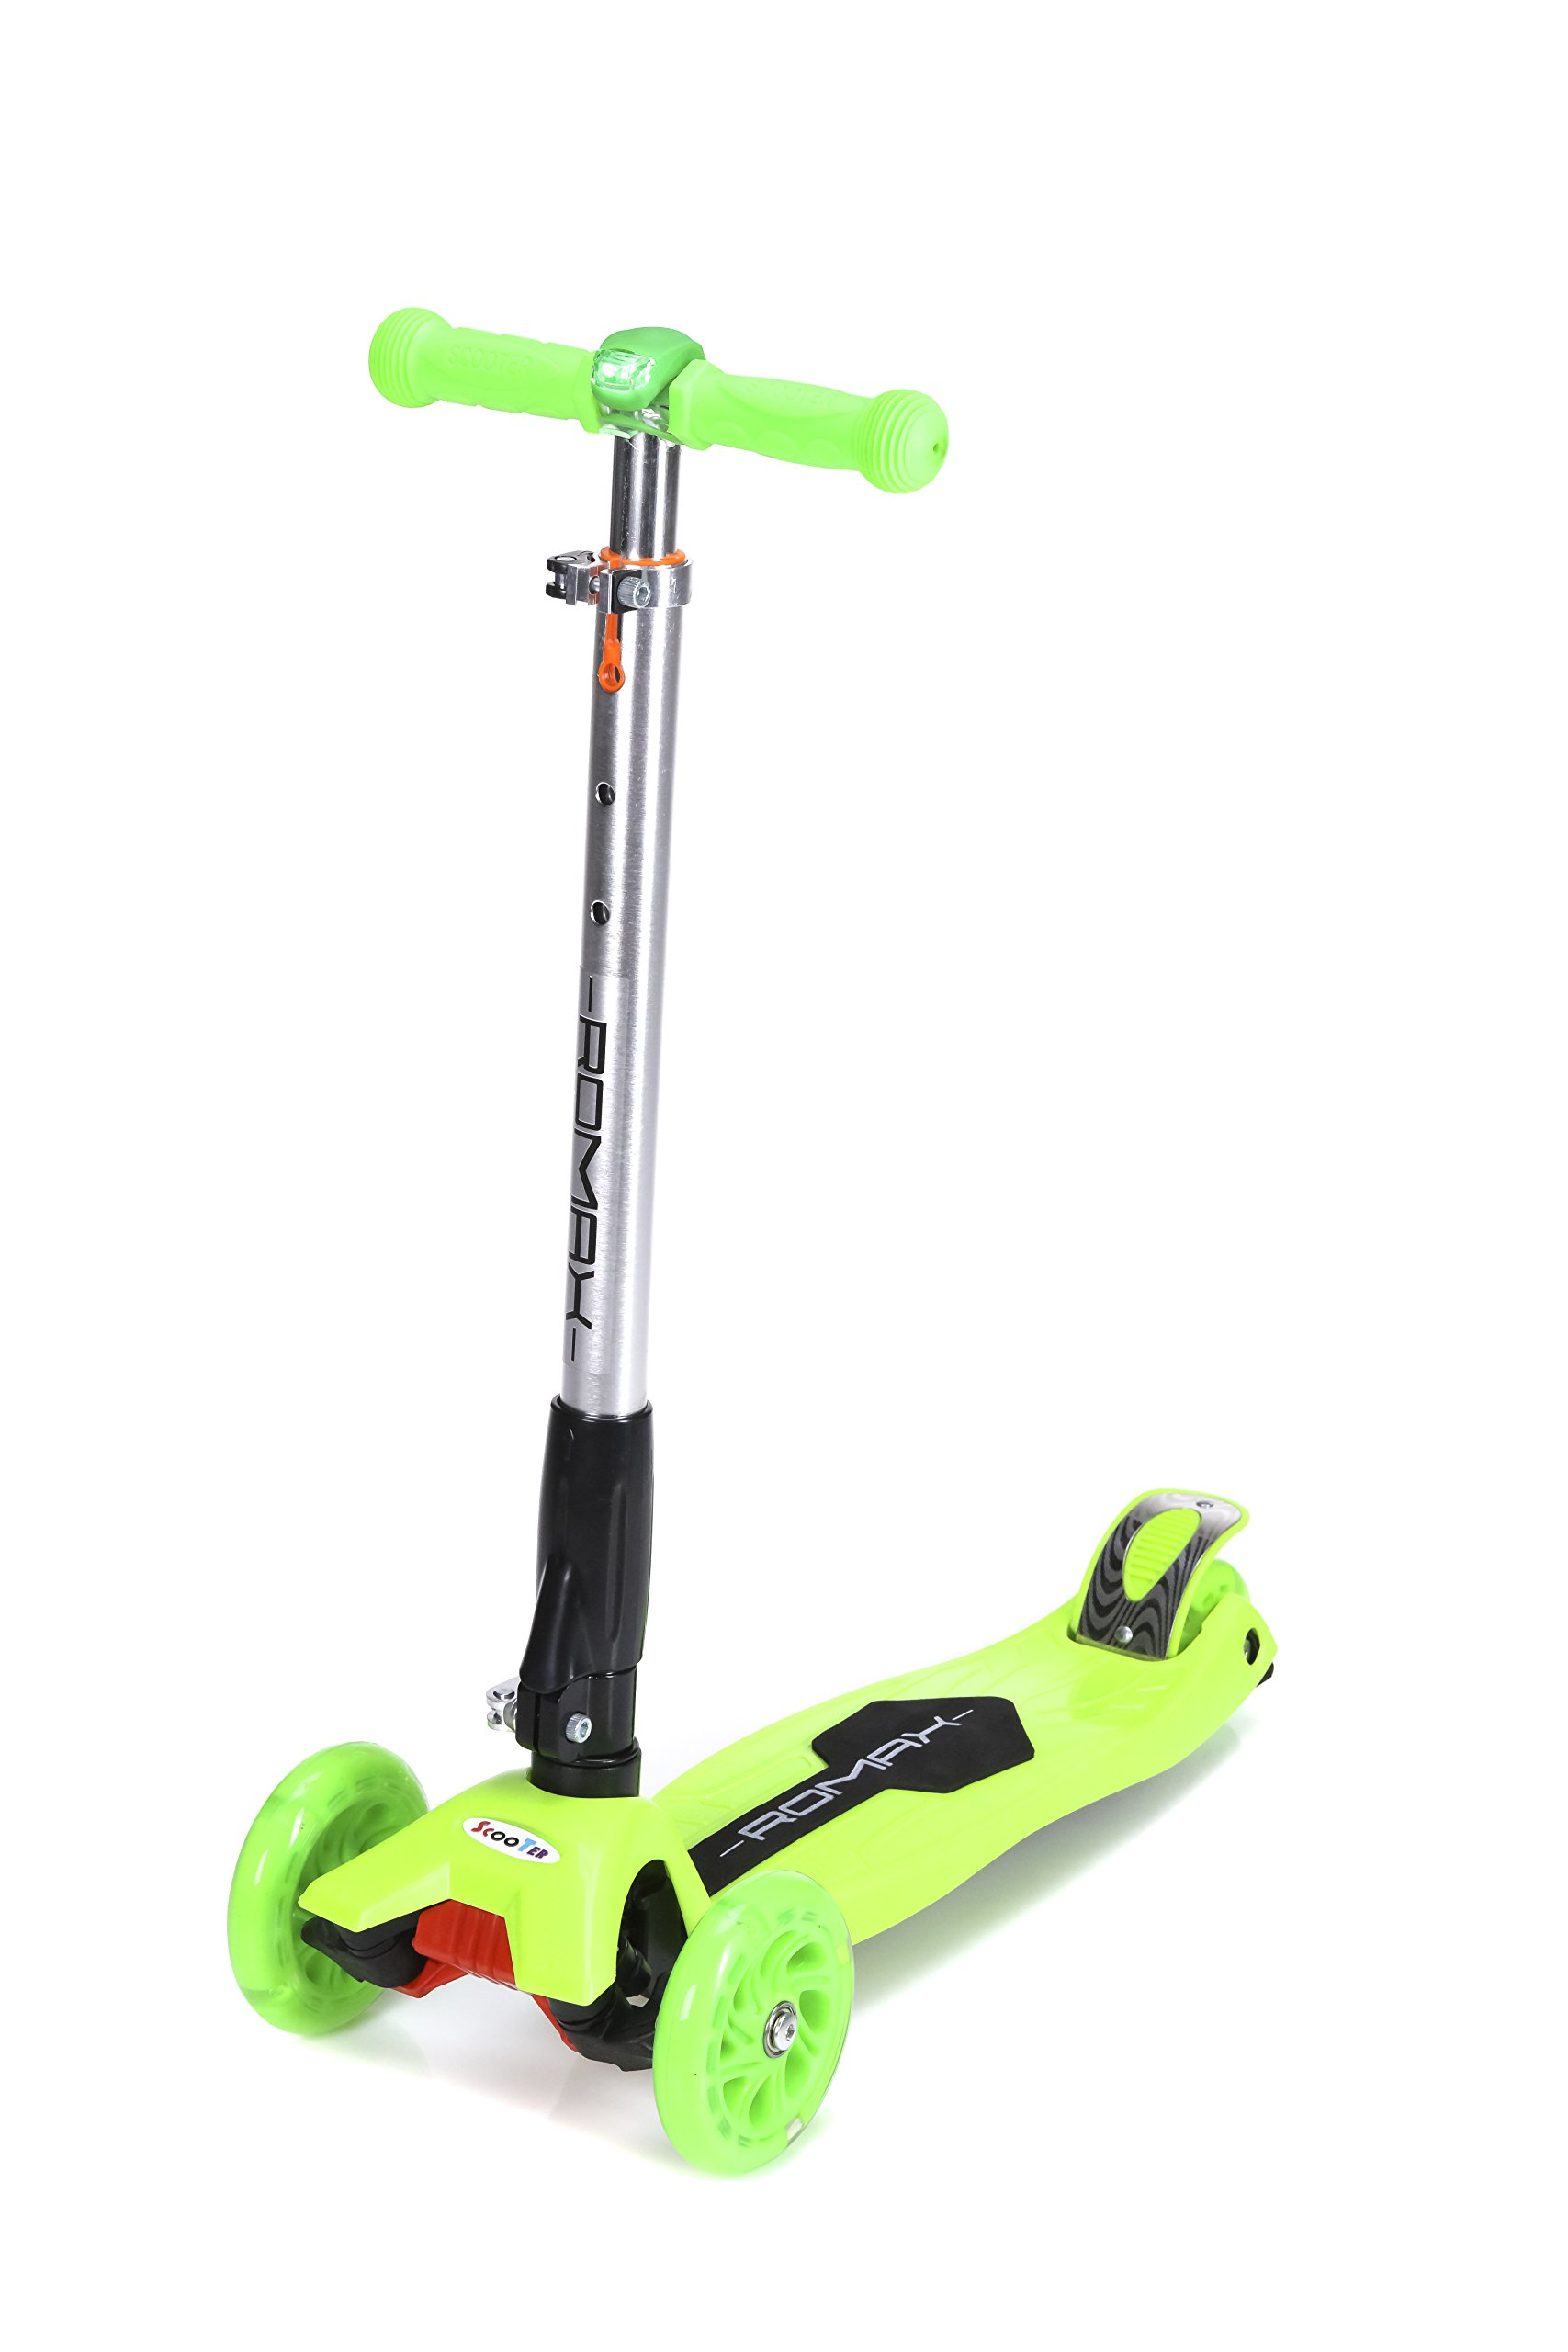 ROMAX Scooter for kids (Green), 3 wheels Kick Glider with Adjustable Height for Children, LED light in Front, Mini Scooter Non-Slippery Platform for Boys and Girls. Children Age 3-12 Years Old. by Romax